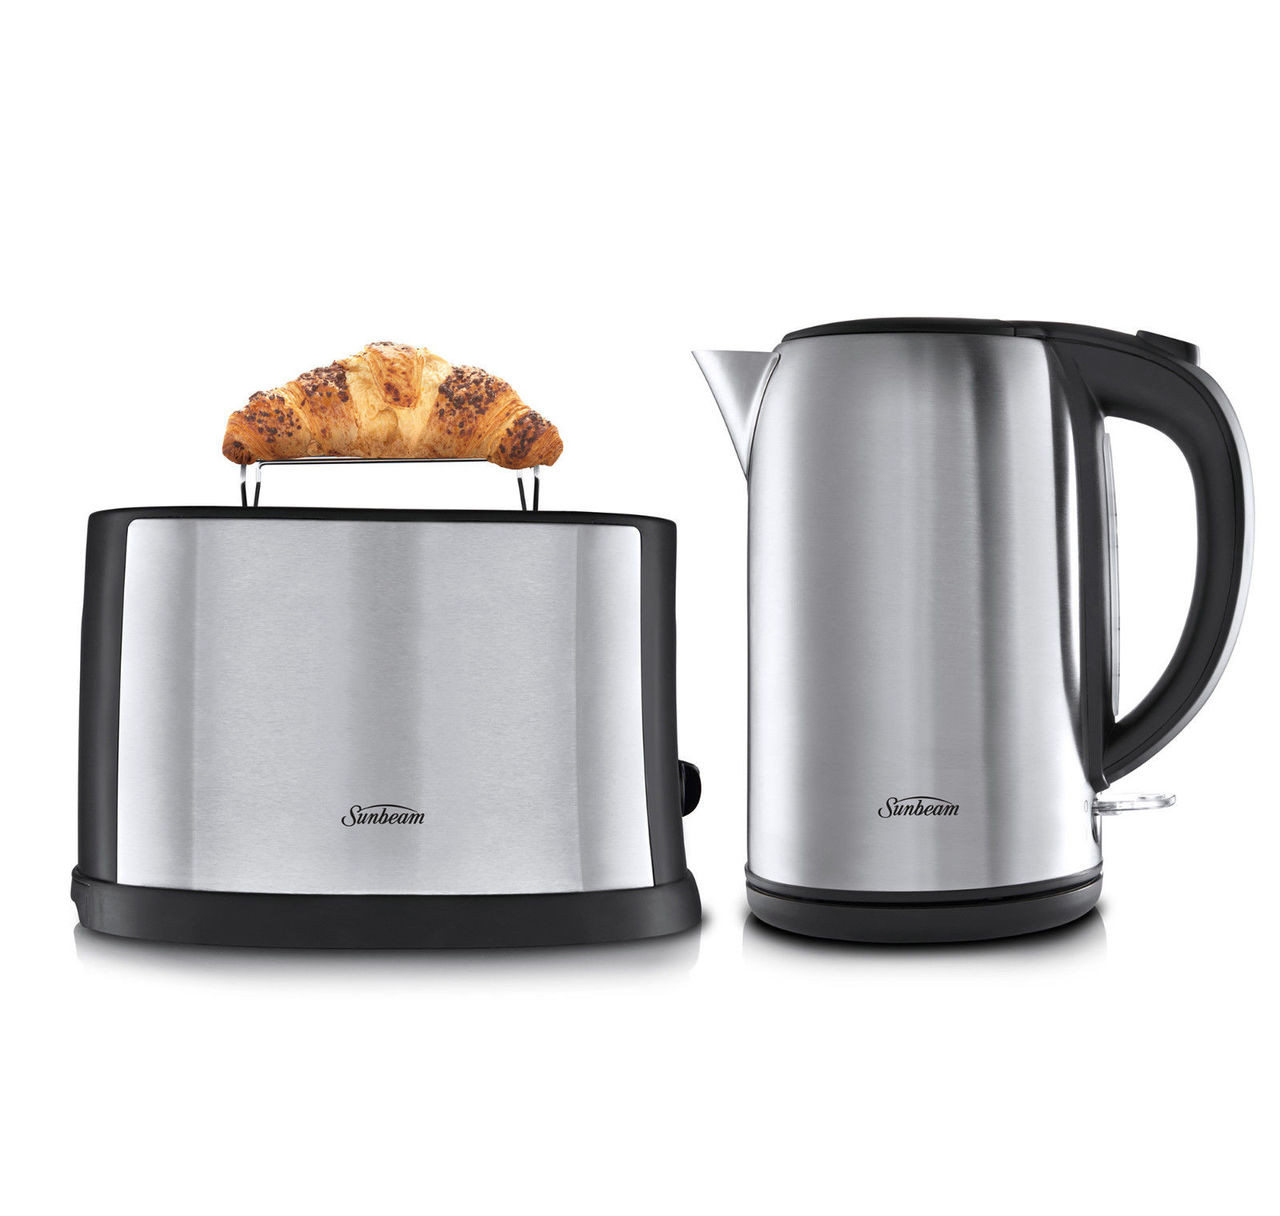 Sunbeam PU5201 Breakfast Essentials Set